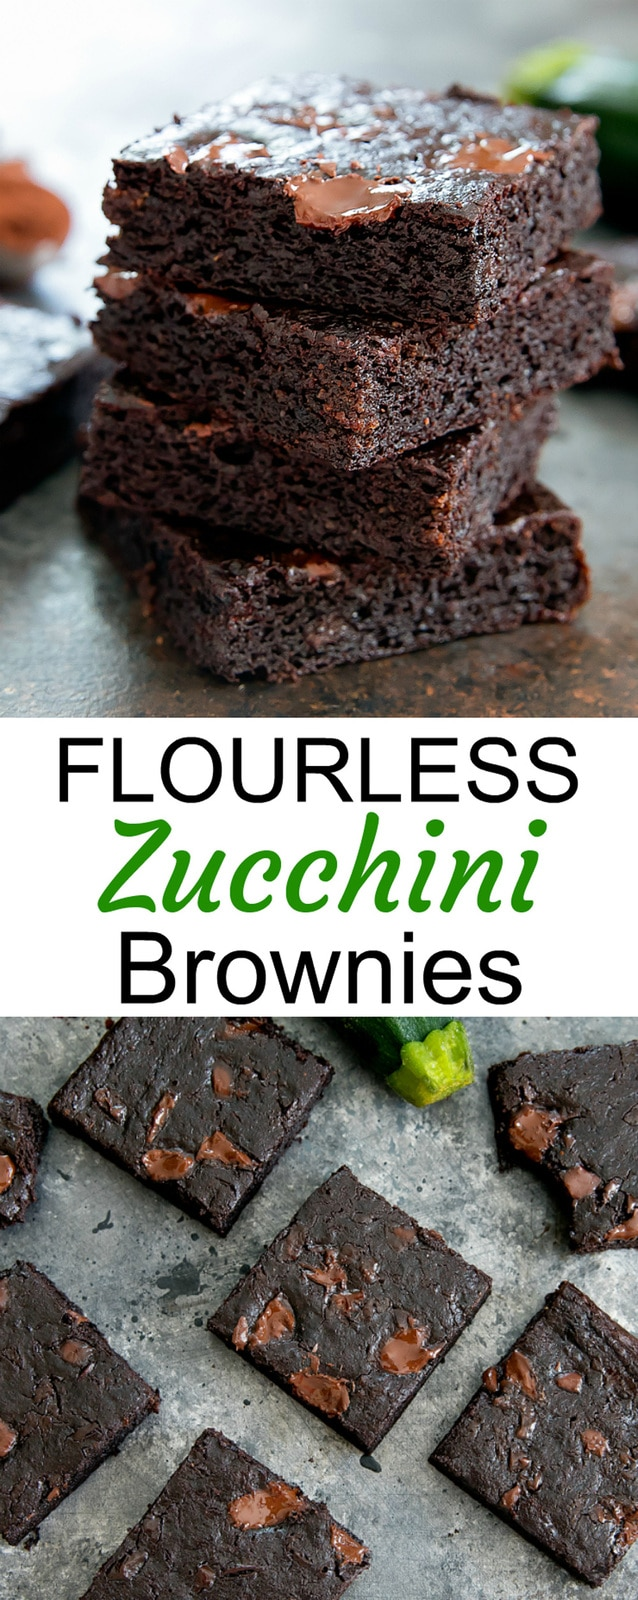 Flourless Zucchini Brownies. Fudgy chocolatey brownies that are also gluten free, grain free and paleo. This is an easy one bowl recipe.